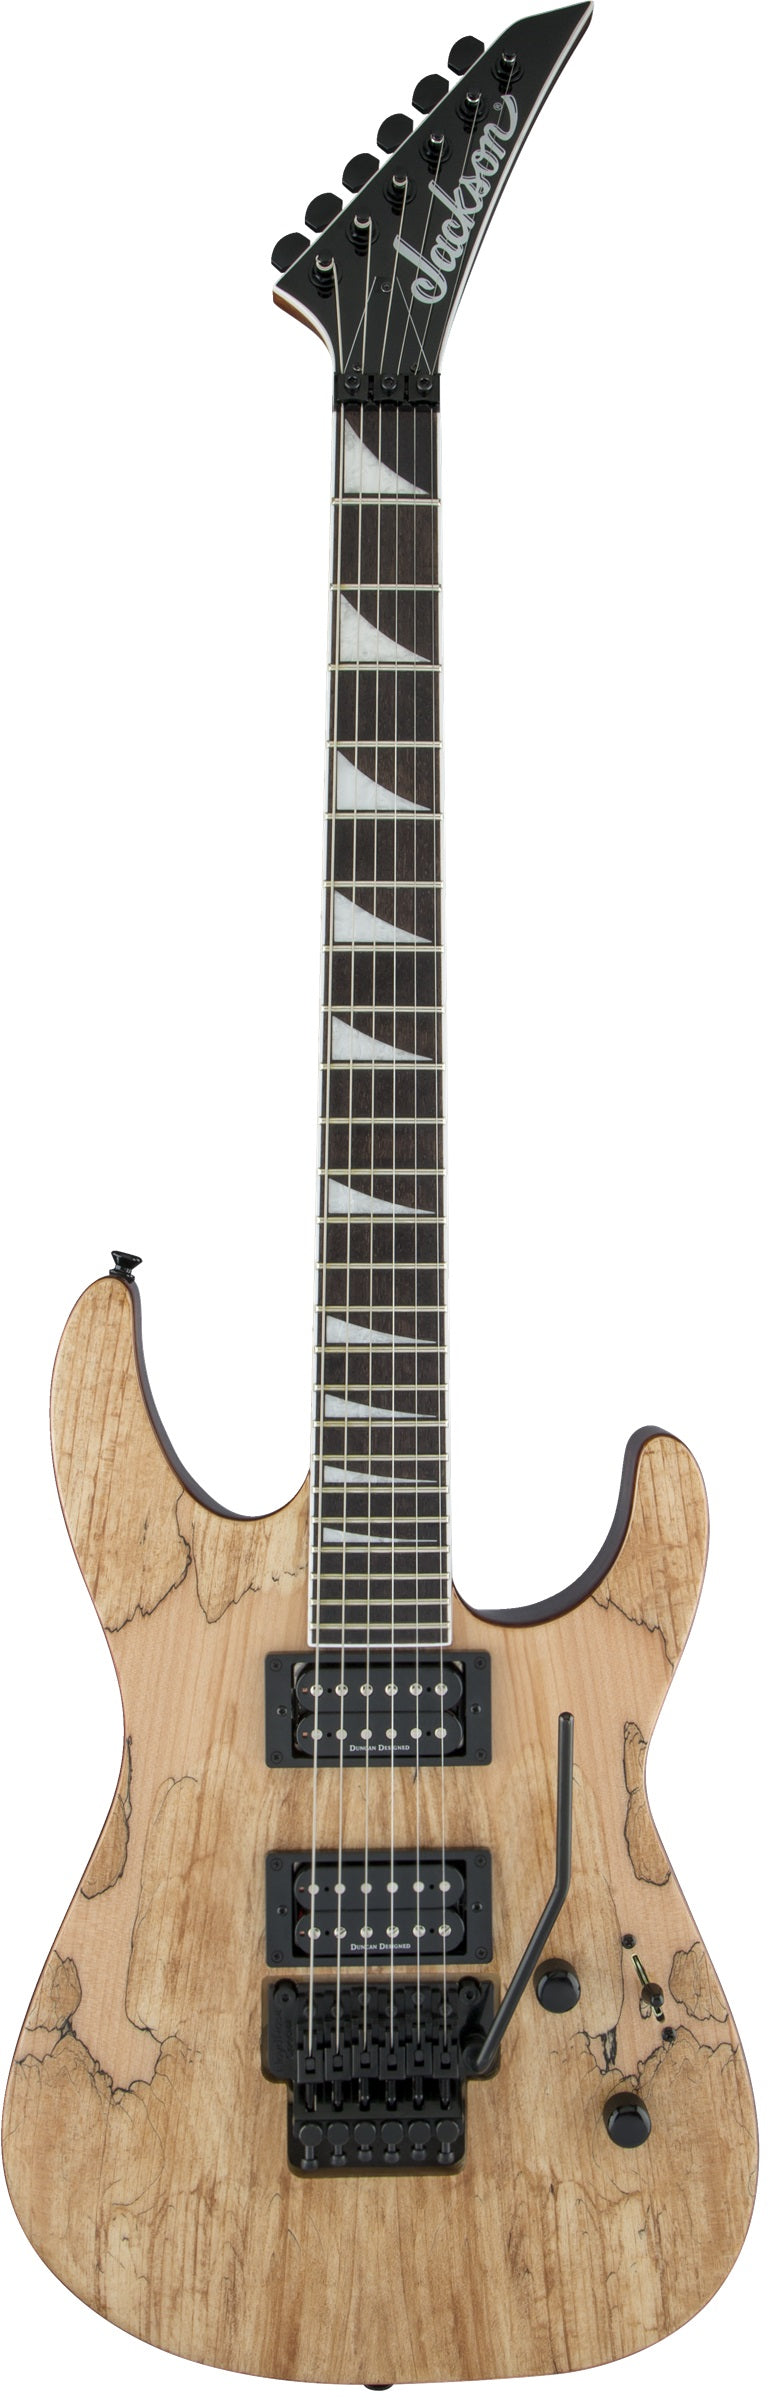 Jackson X Series Soloist SLX Electric Guitar - Dark Walnut Fingerboard, Spalted Maple